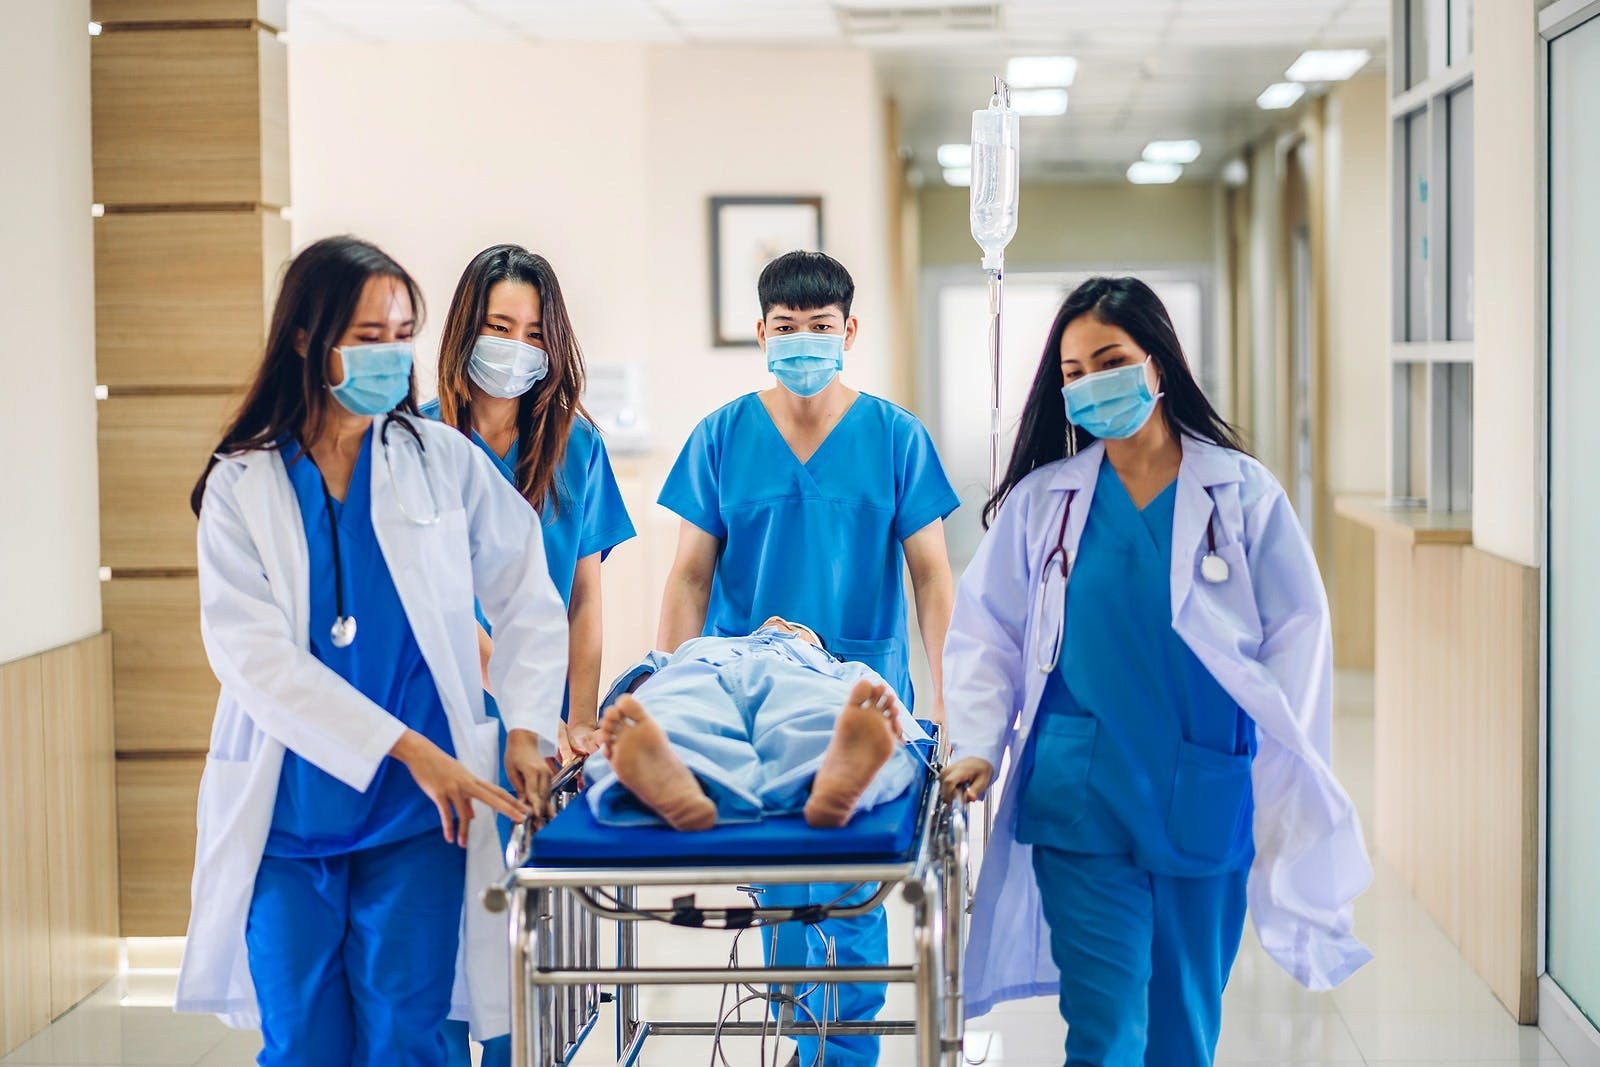 Group of professional medical doctor team and assistant with stethoscope in uniform taking seriously injured patient to operation emergency theatre room in hospital.health medical care concept